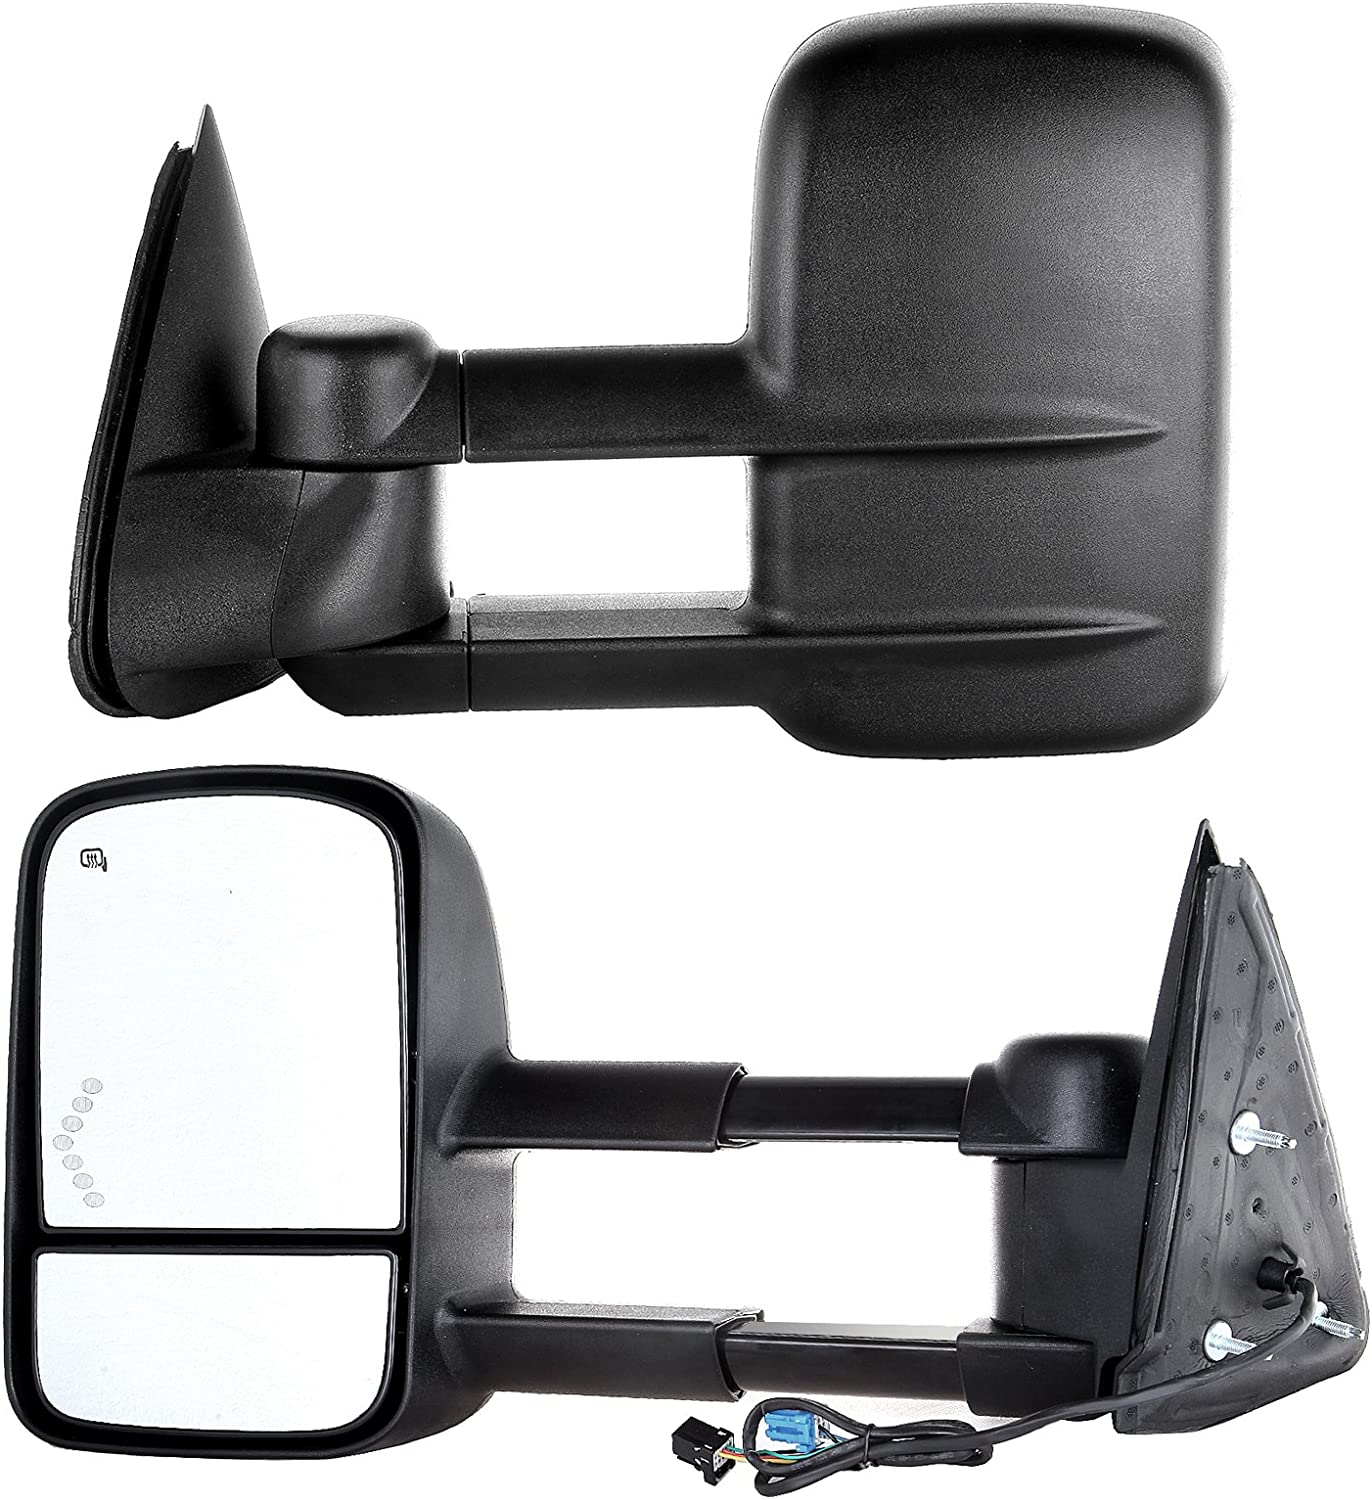 07 Classic Models OCPTY Pair of Power Adjusted Heated Towing Side LED Turn Signal Manual Telescopic Tow Mirrors Fit for 03-07 Chevy GMC Silverado Sierra